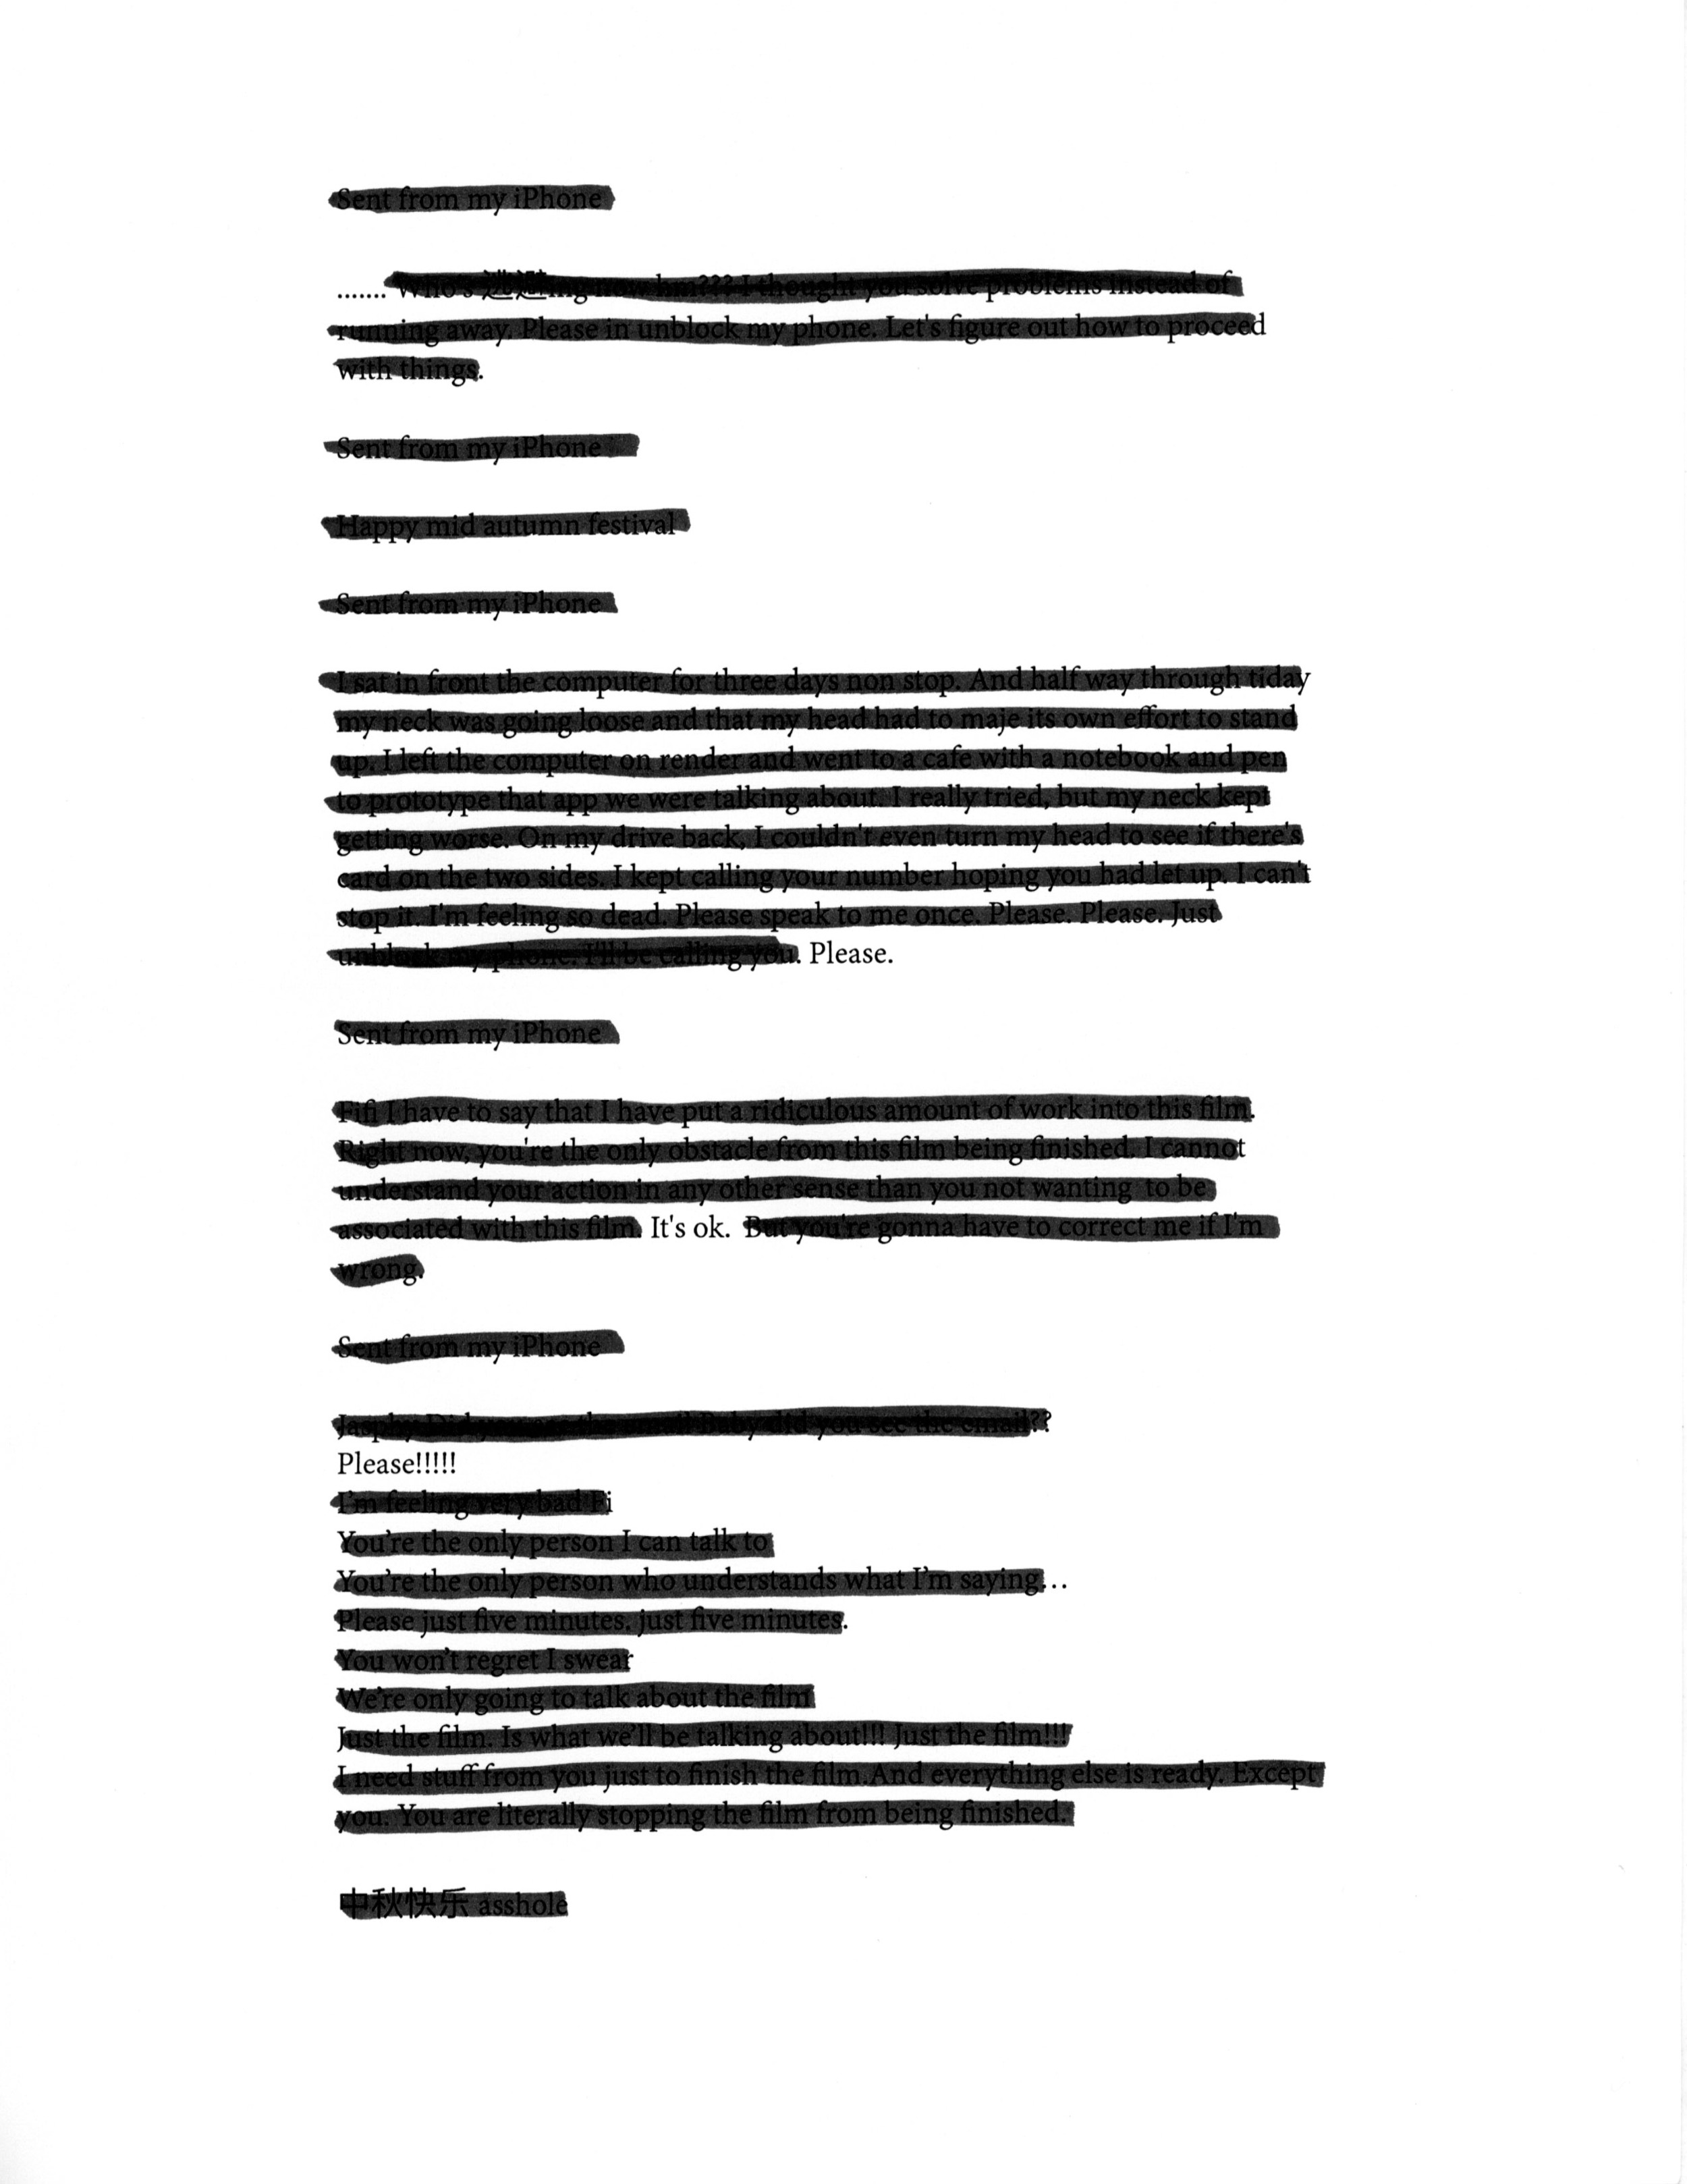 page007.jpg